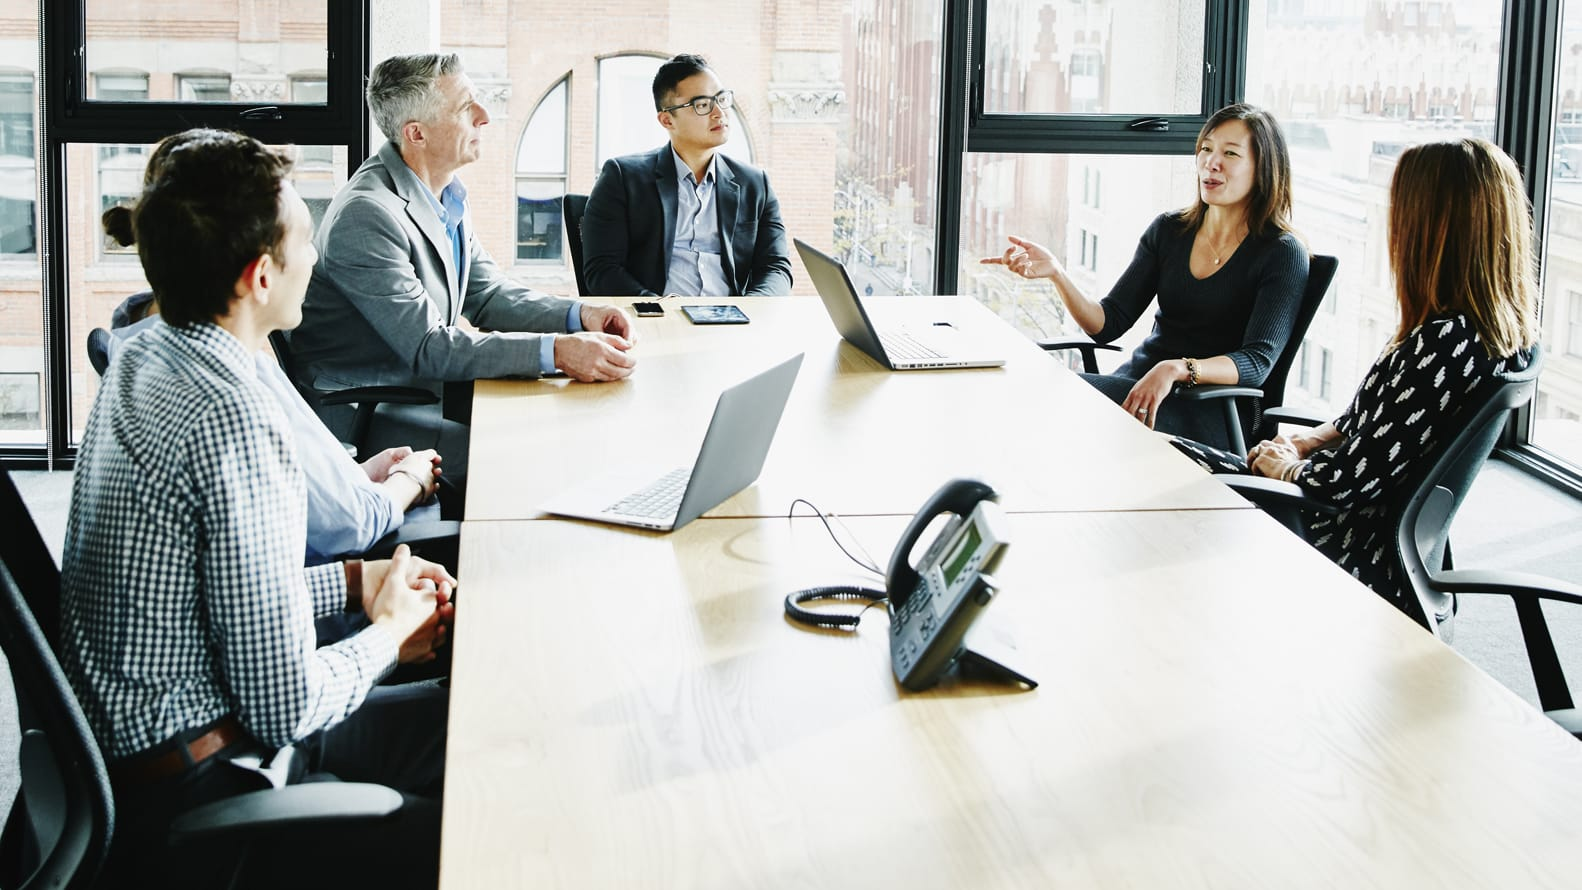 Men and Women discussing topics while sitting at a table in a conference room